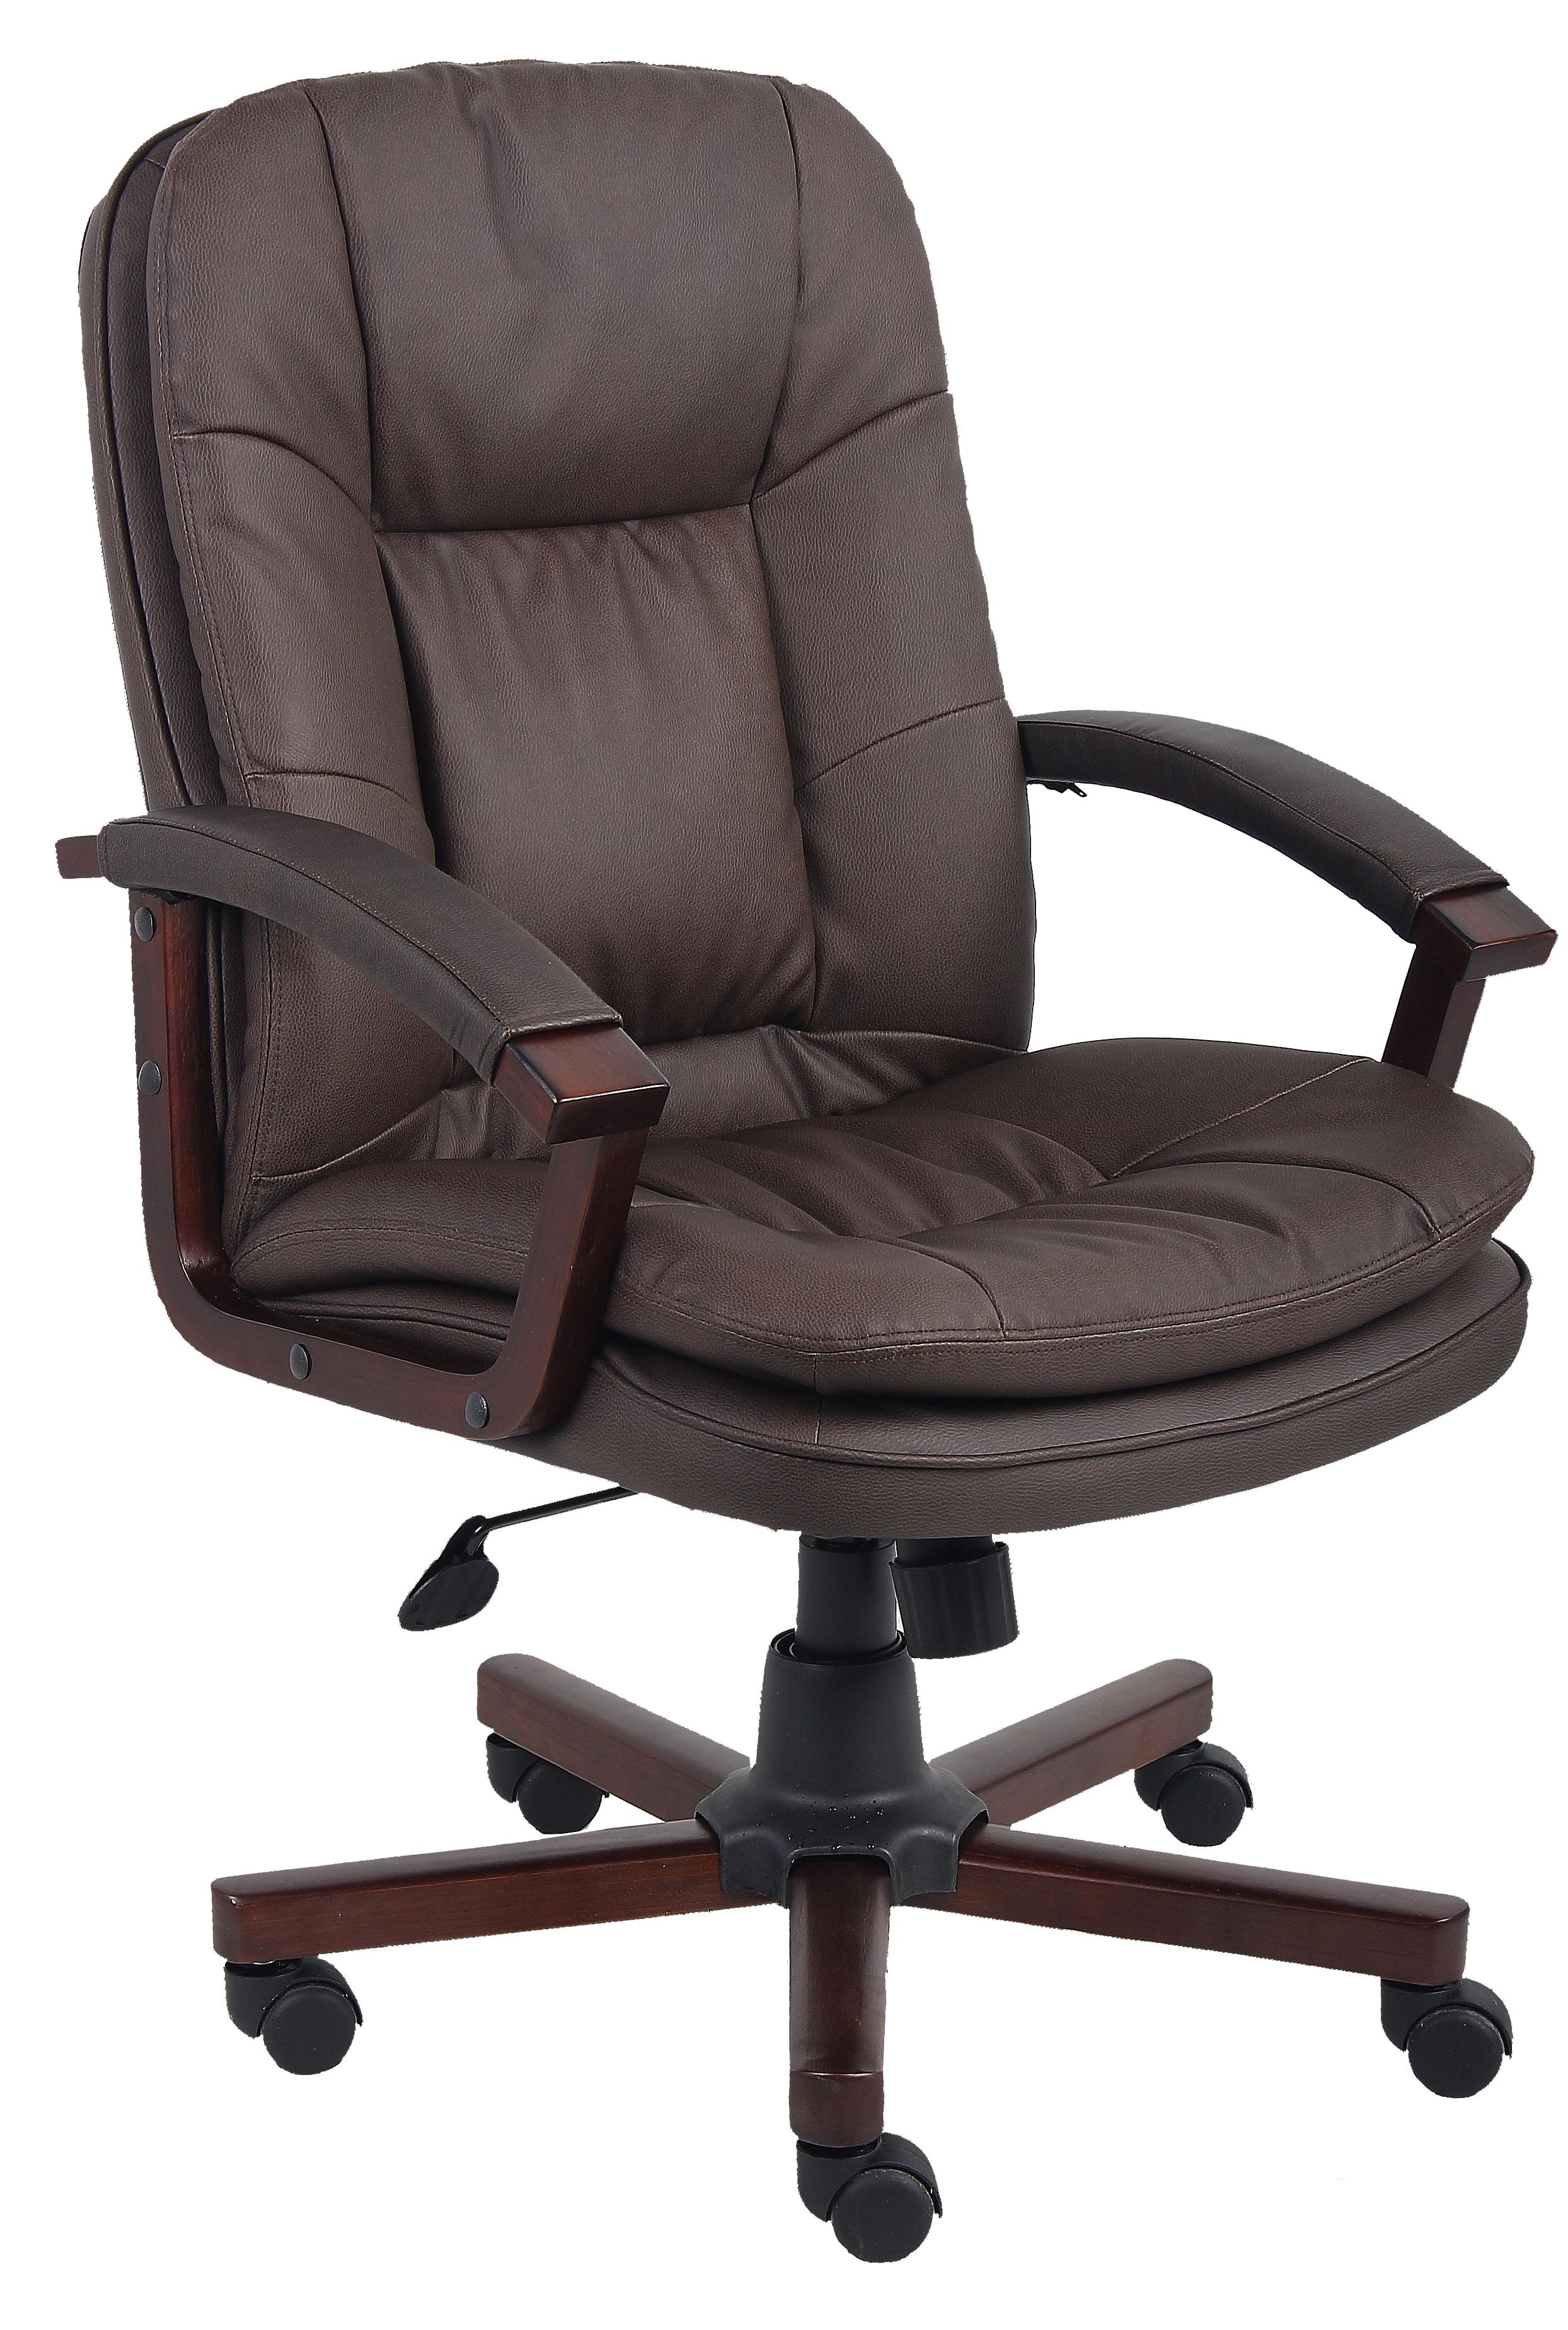 Presidential Seating Executive Bomber Brown LeatherPlus Executive Chair - Item Number: O-796-VSBN